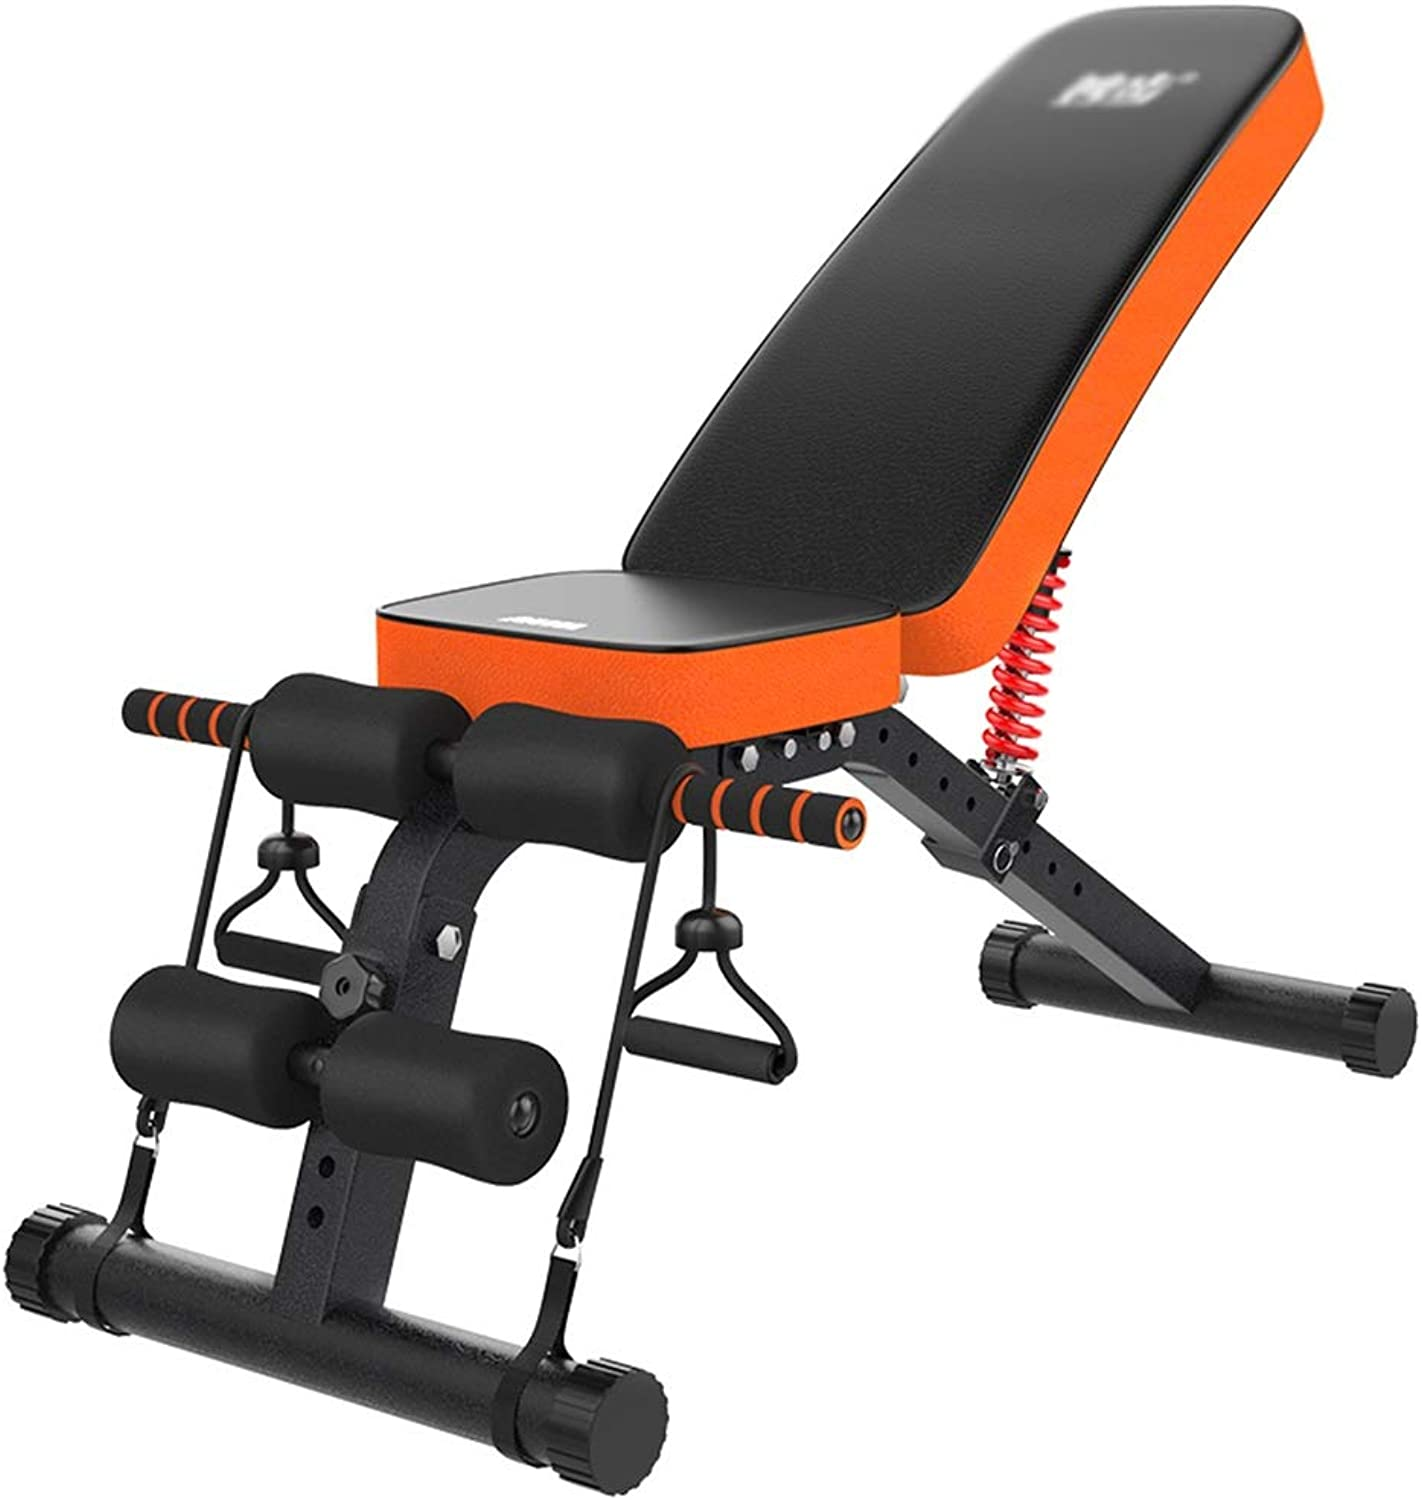 Dumbbell Bench situp Board Home MultiFunctional Fitness Chair Commercial Weight Bench Abdominal Exerciser, Foldable (color   Black, Size   118  38  55cm)